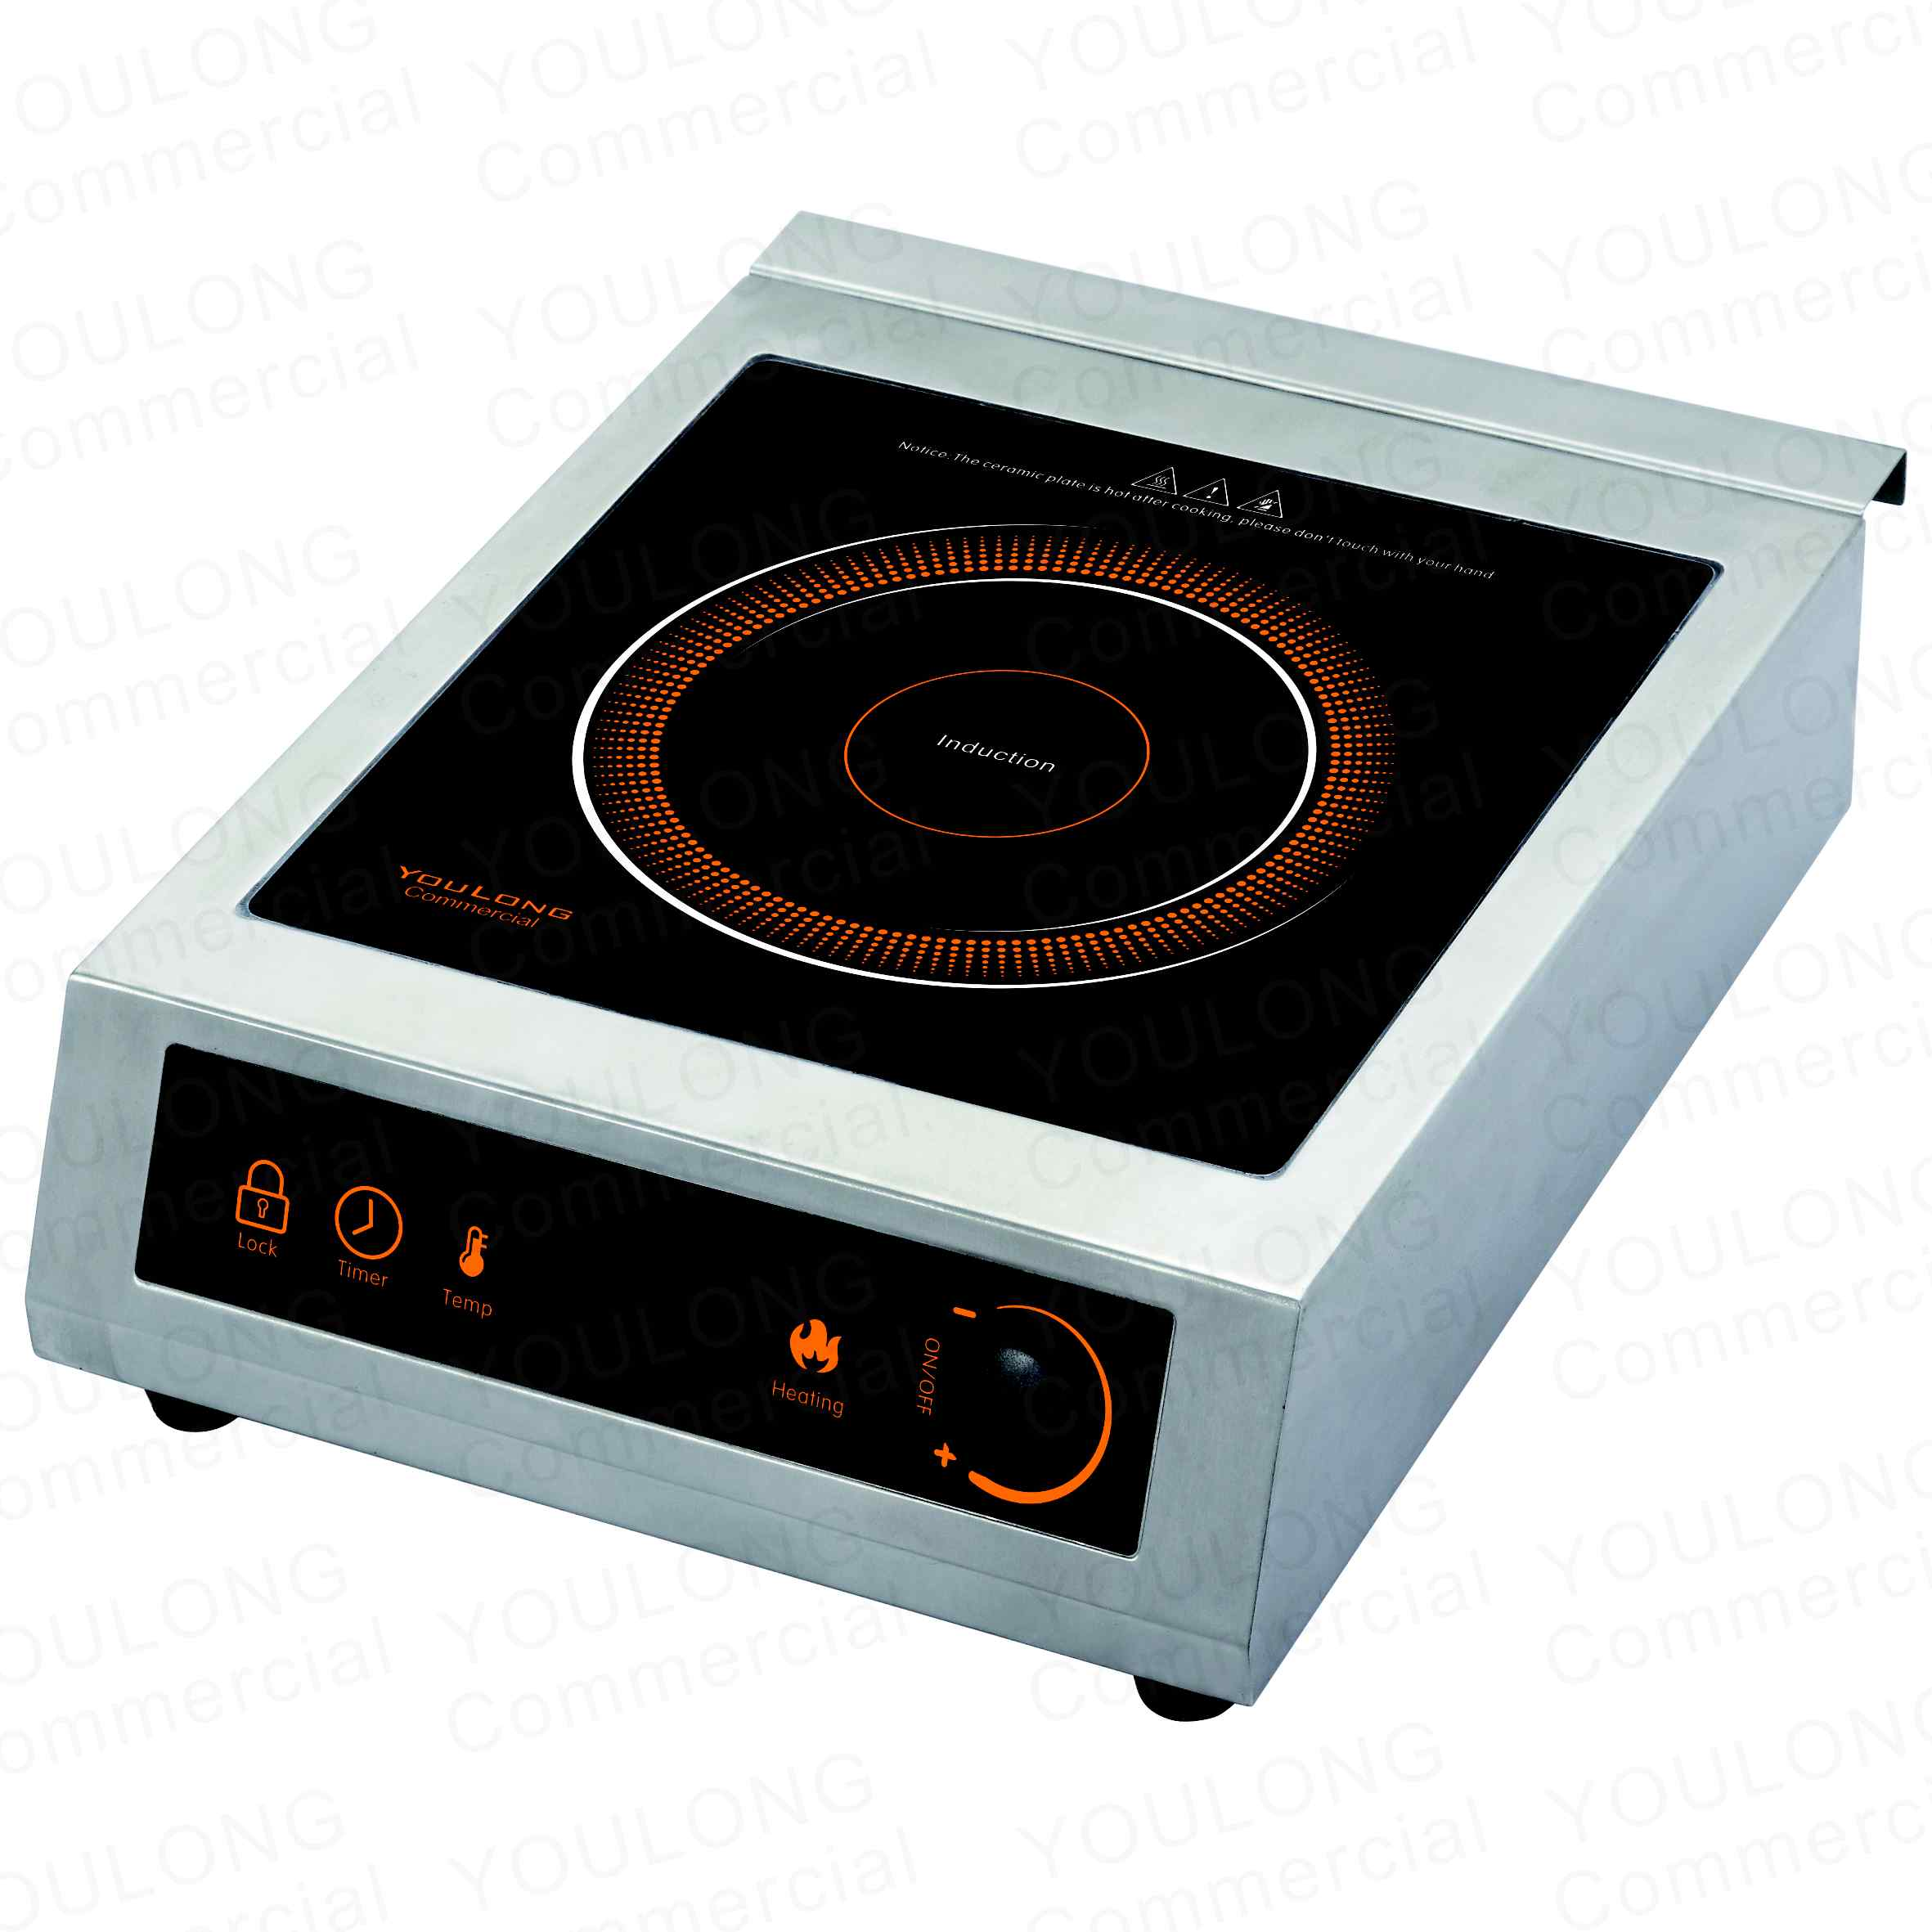 induction cooker C3511-BK Press and Knob Control